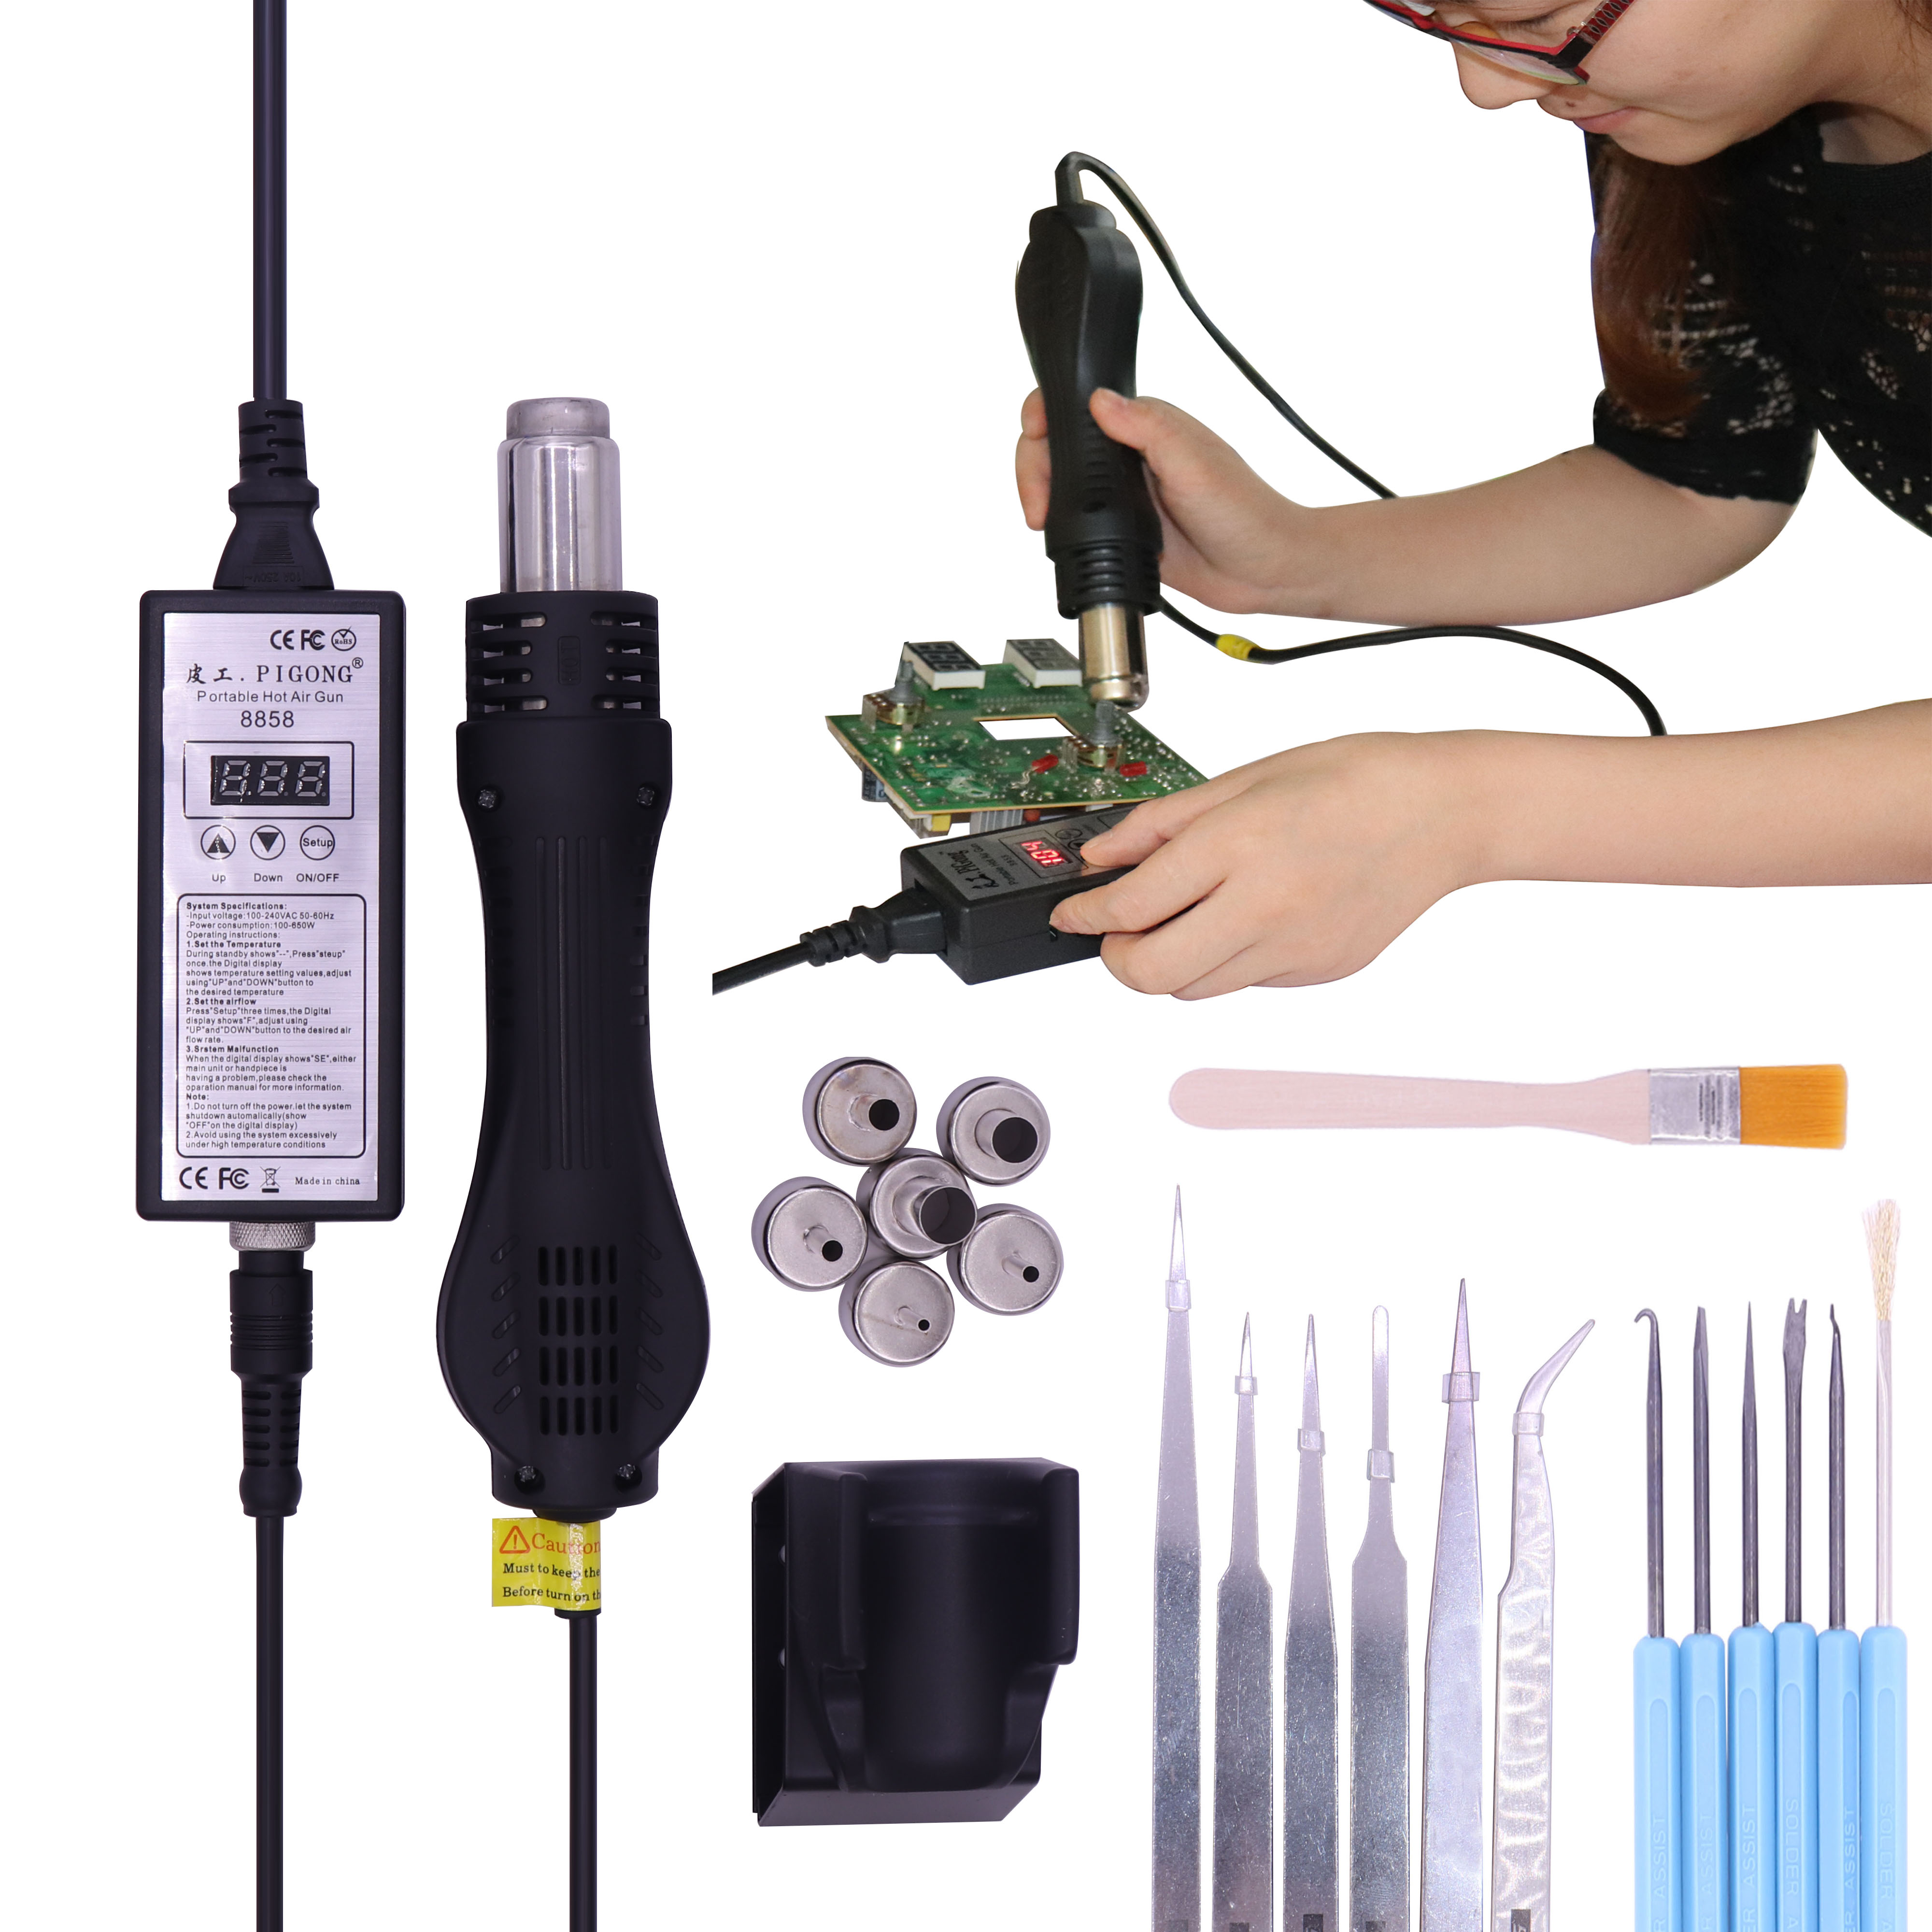 High quality 220V Portable BGA Rework soldering station Hot Air Blower Heat Gun 8858 Better  Hand held hot air gun 6pcs nozzle-in Heat Guns from Tools on